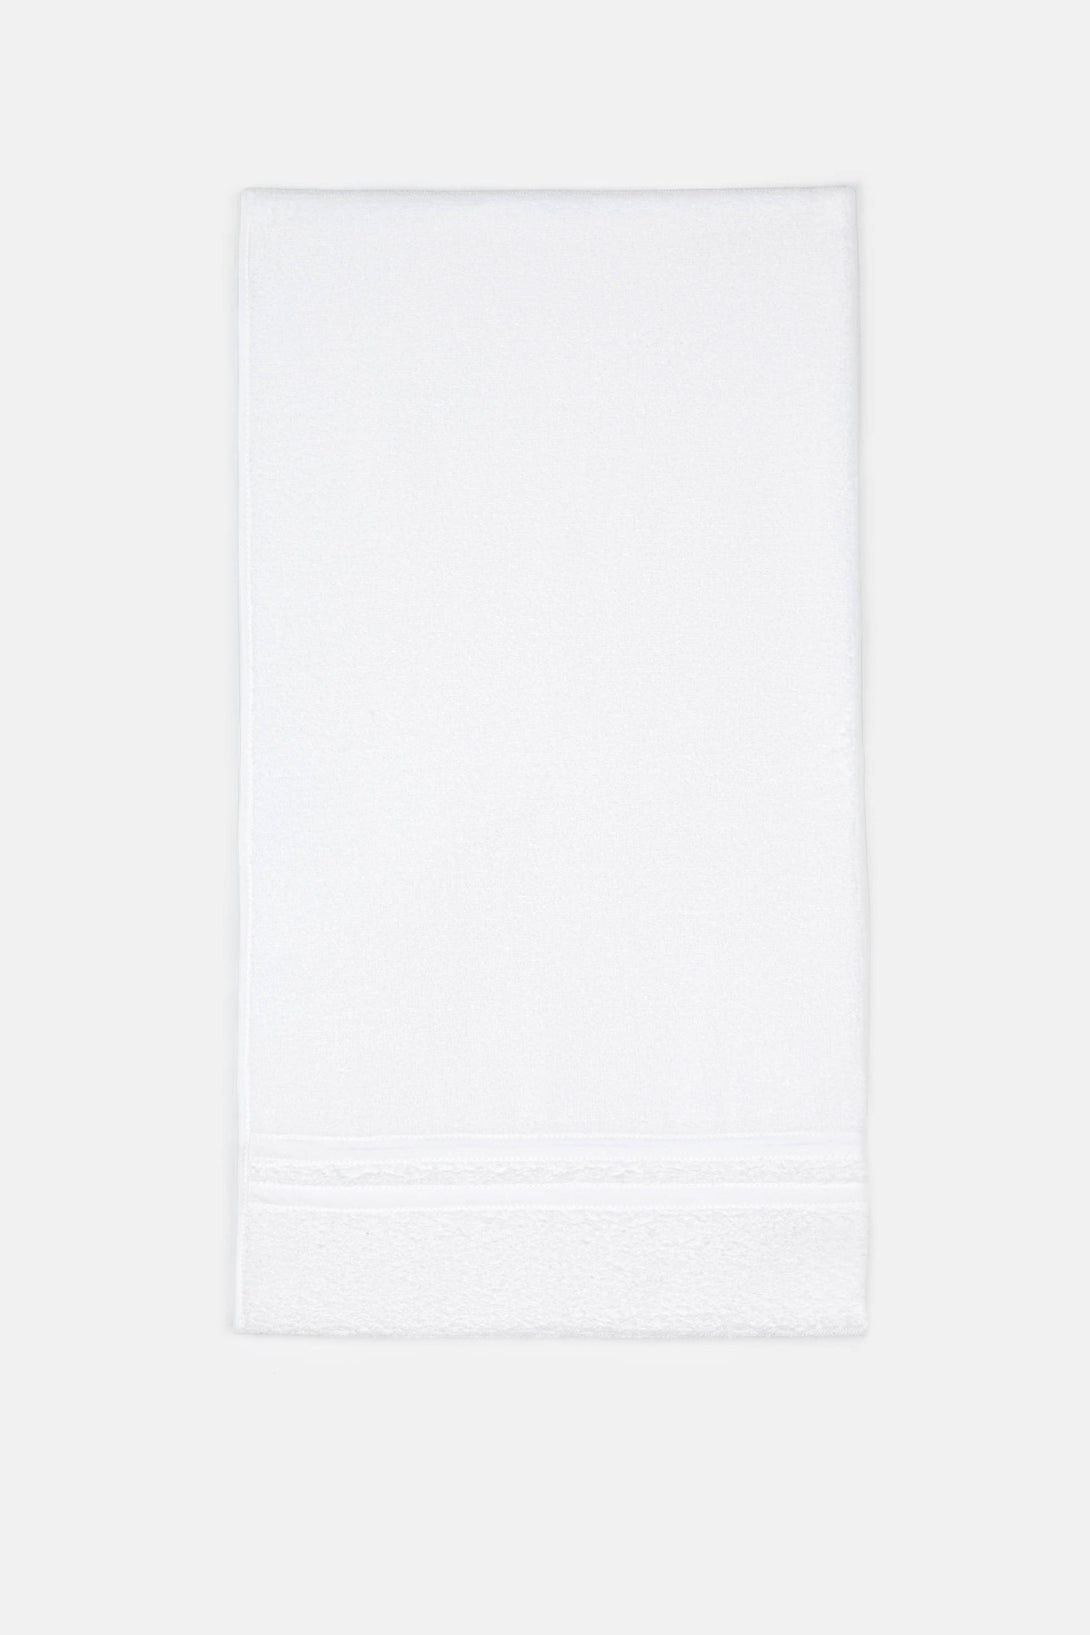 Lido Terry Cloth Bath Towel - White